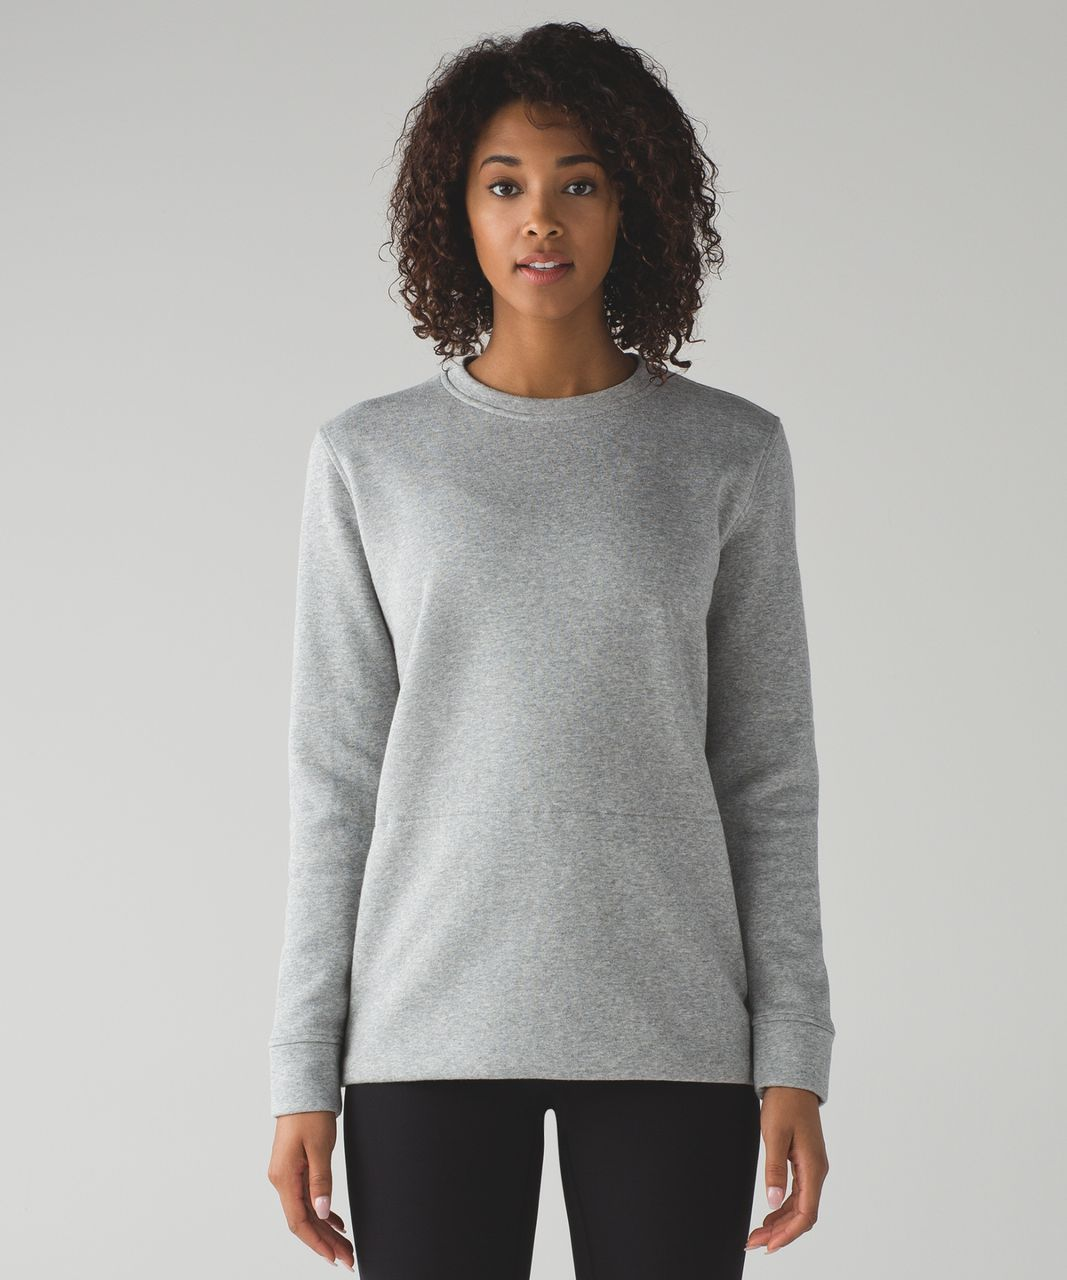 Lululemon Yes Fleece Pullover - Heathered Medium Grey - lulu fanatics